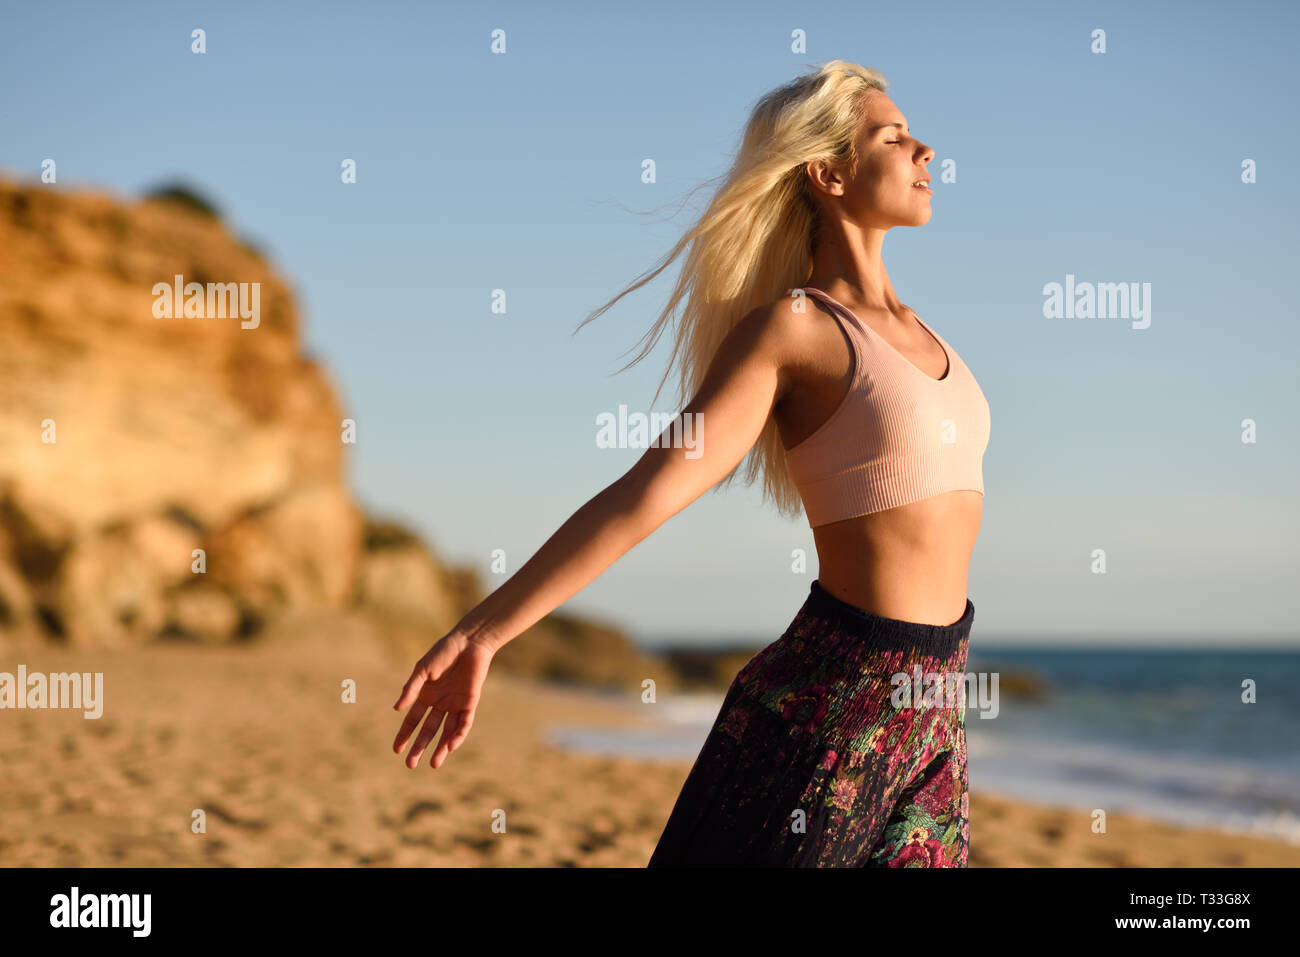 Woman enjoying the sunset on a beautiful beach in Cadiz, Andalusia, Spain. Young female opening arms and breathing the sea air. - Stock Image